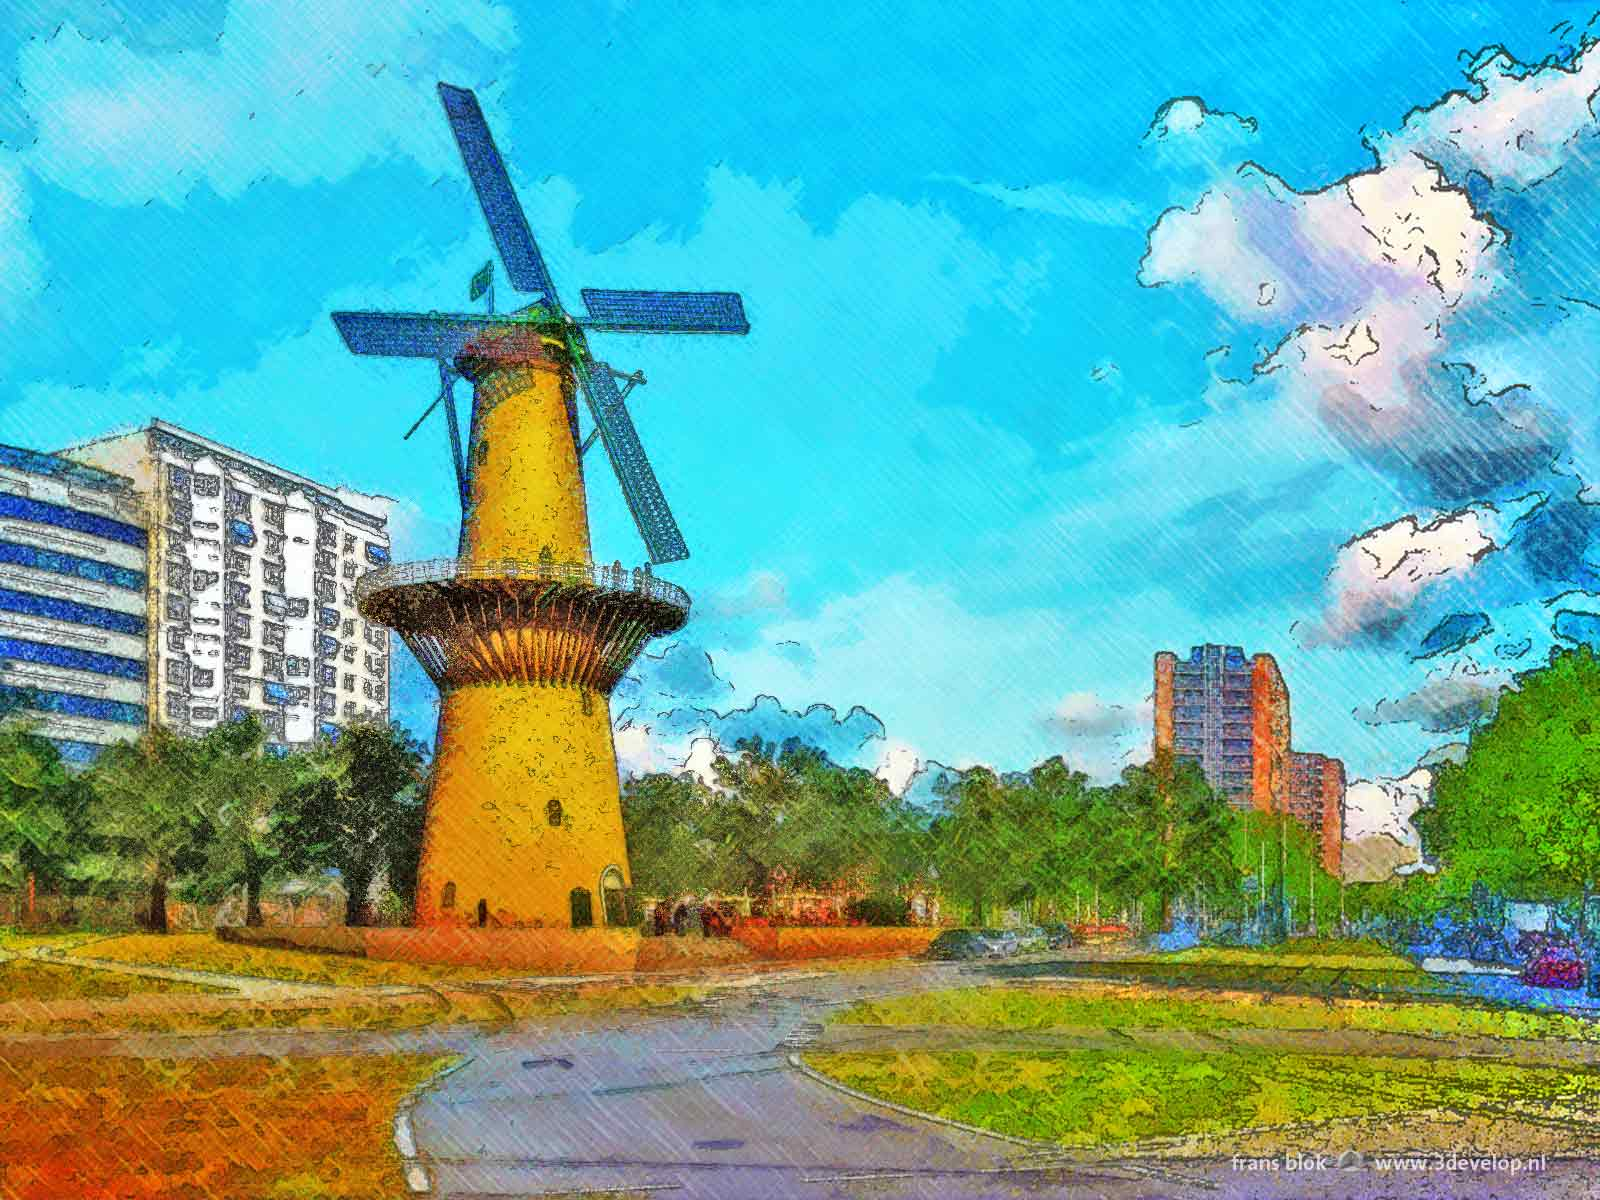 Windmill de Noord, reconstructed at Oostplein, Rotterdam